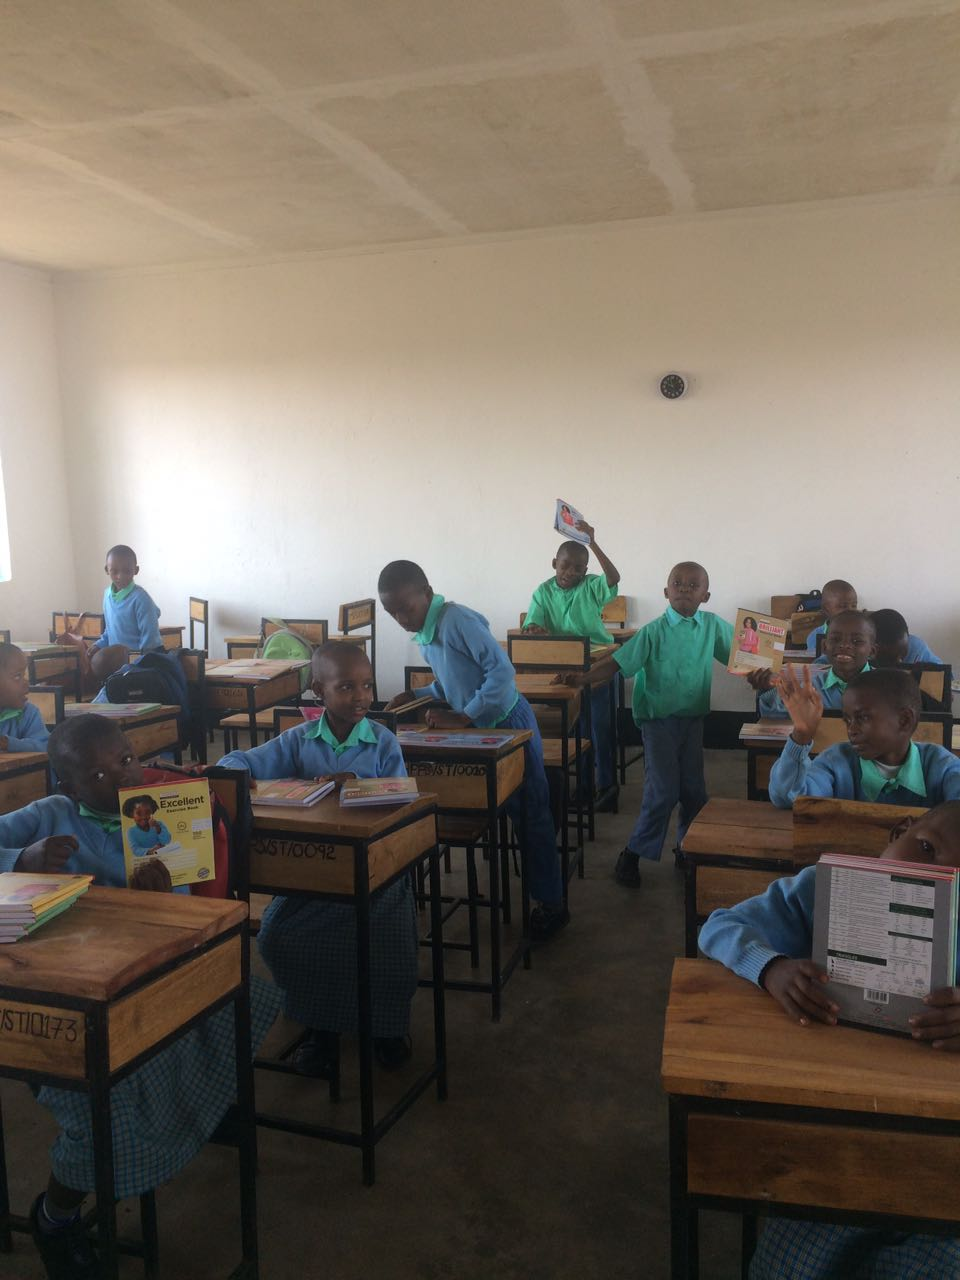 Ceilings were recently installed in the Heaven classrooms to help cut down on sound disruptions.